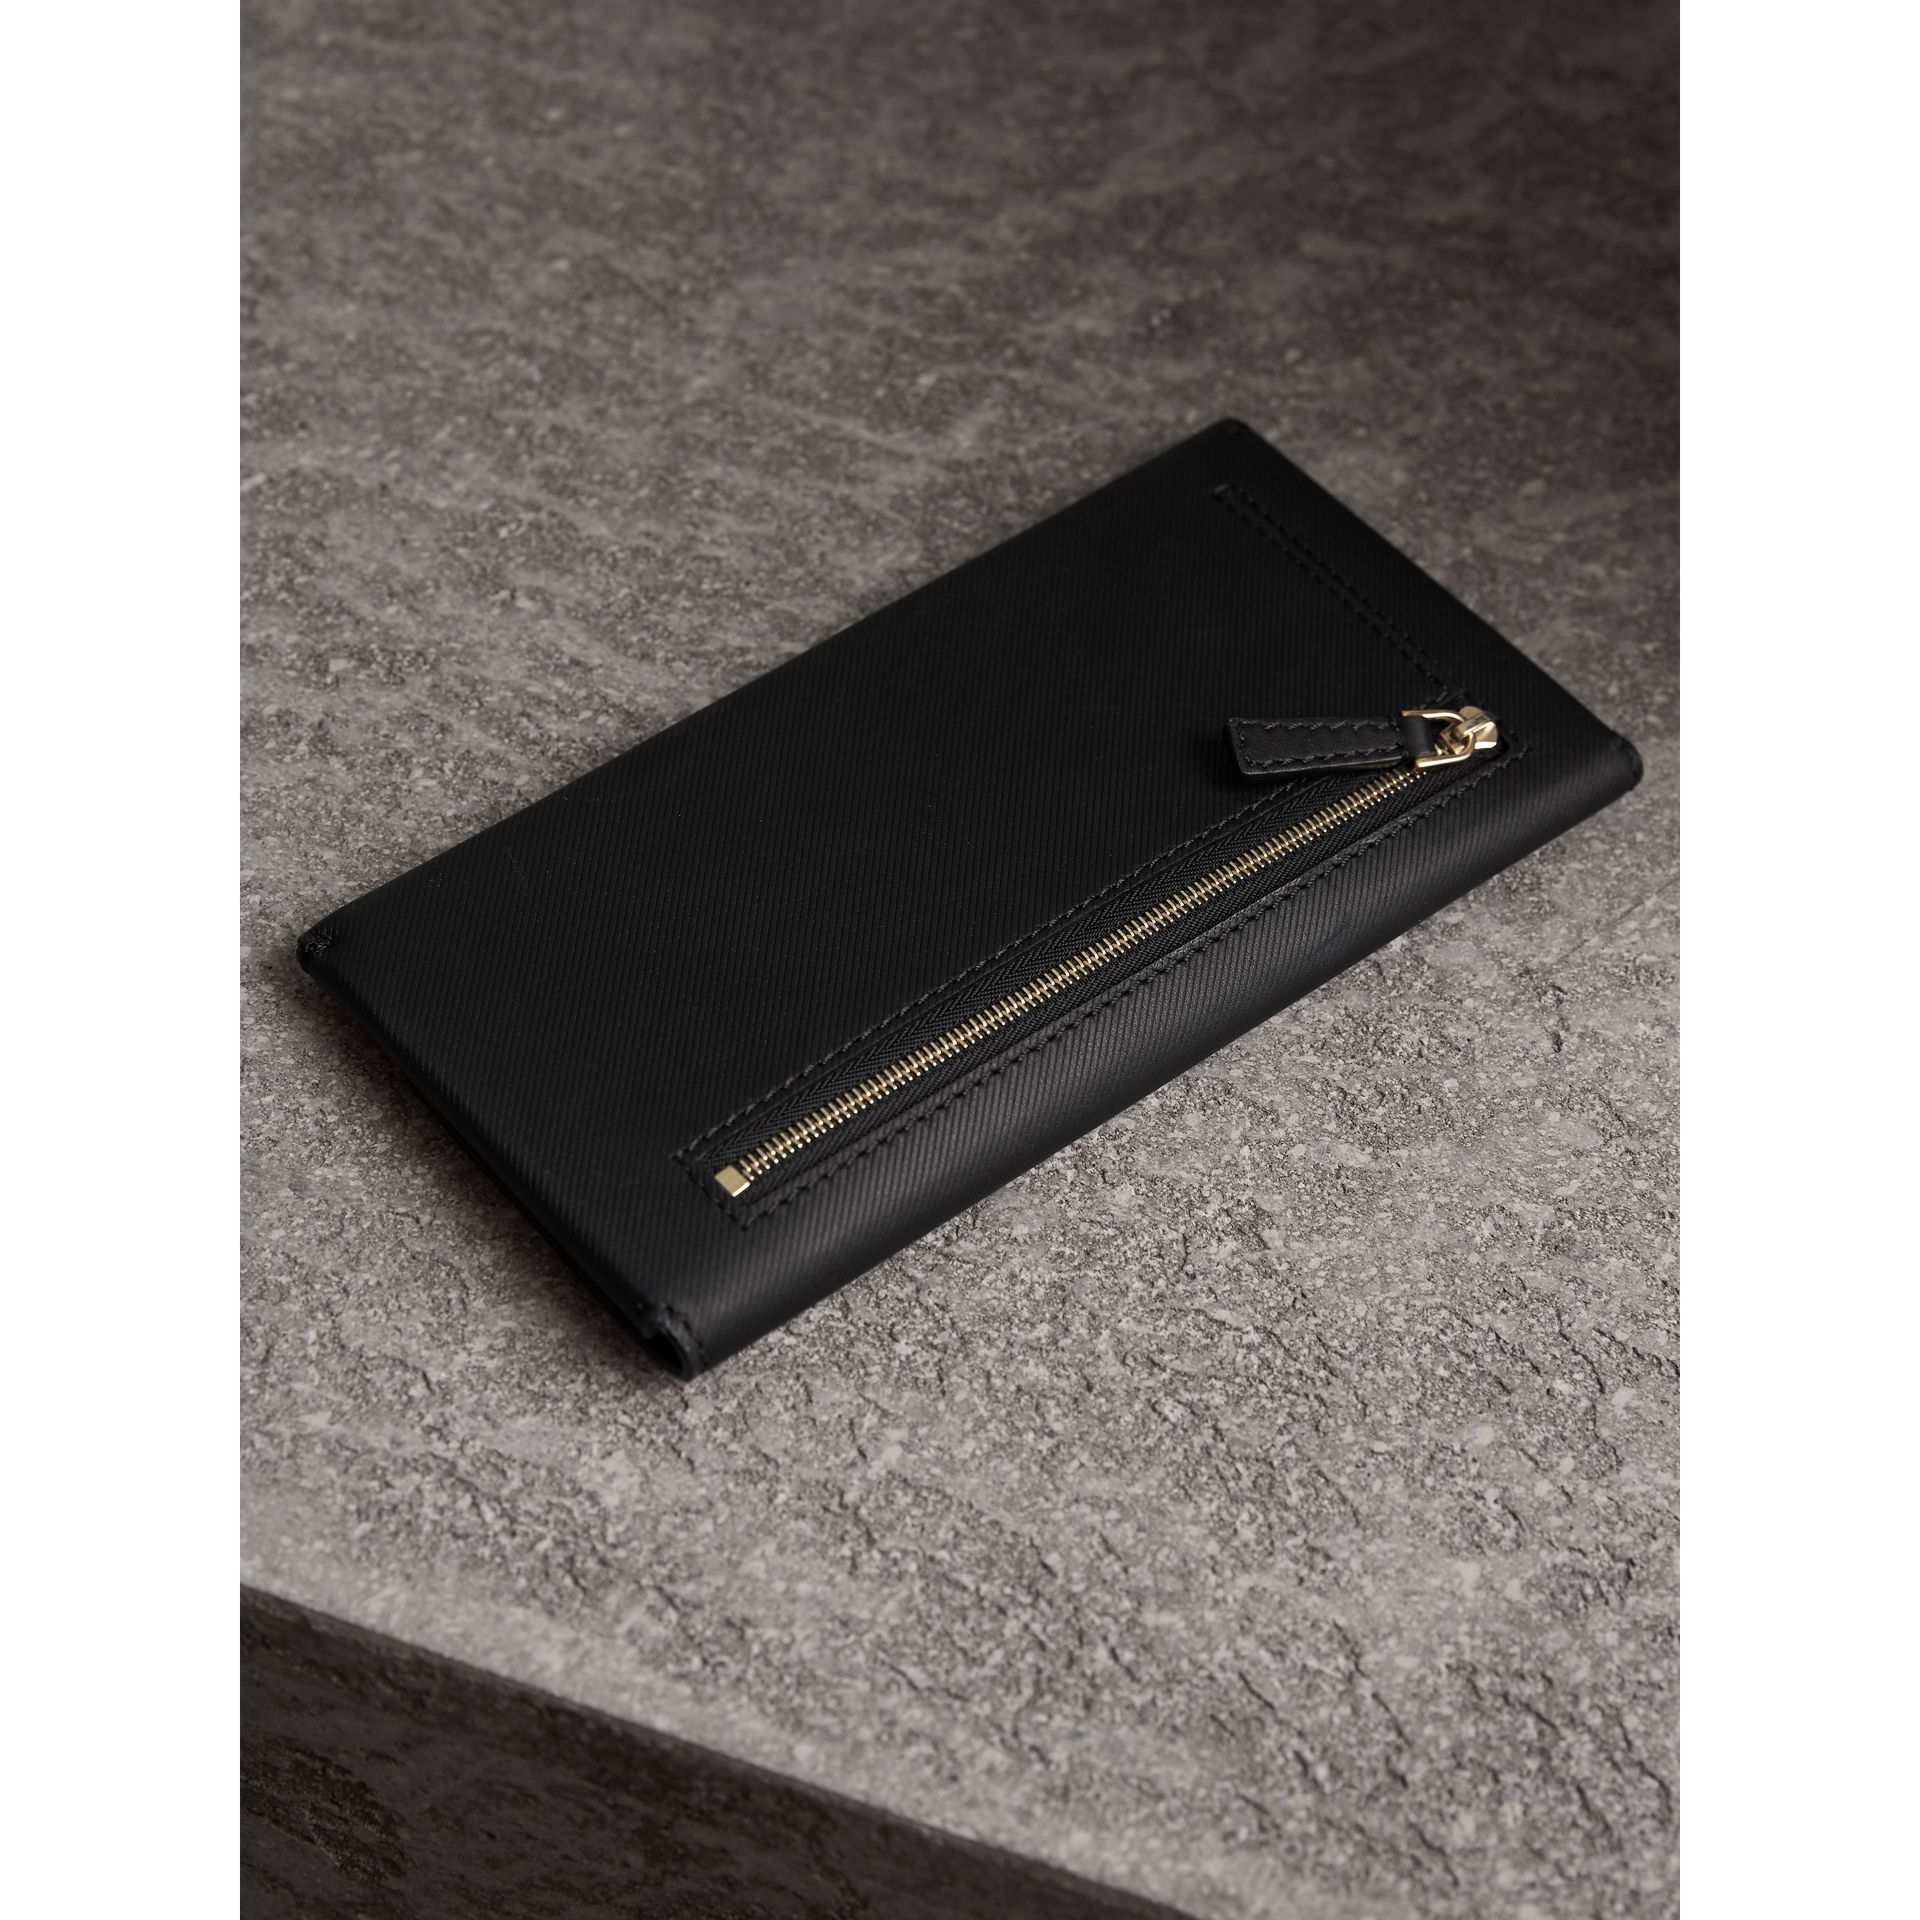 Trench Leather Envelope Wallet in Black - Women | Burberry Singapore - gallery image 3